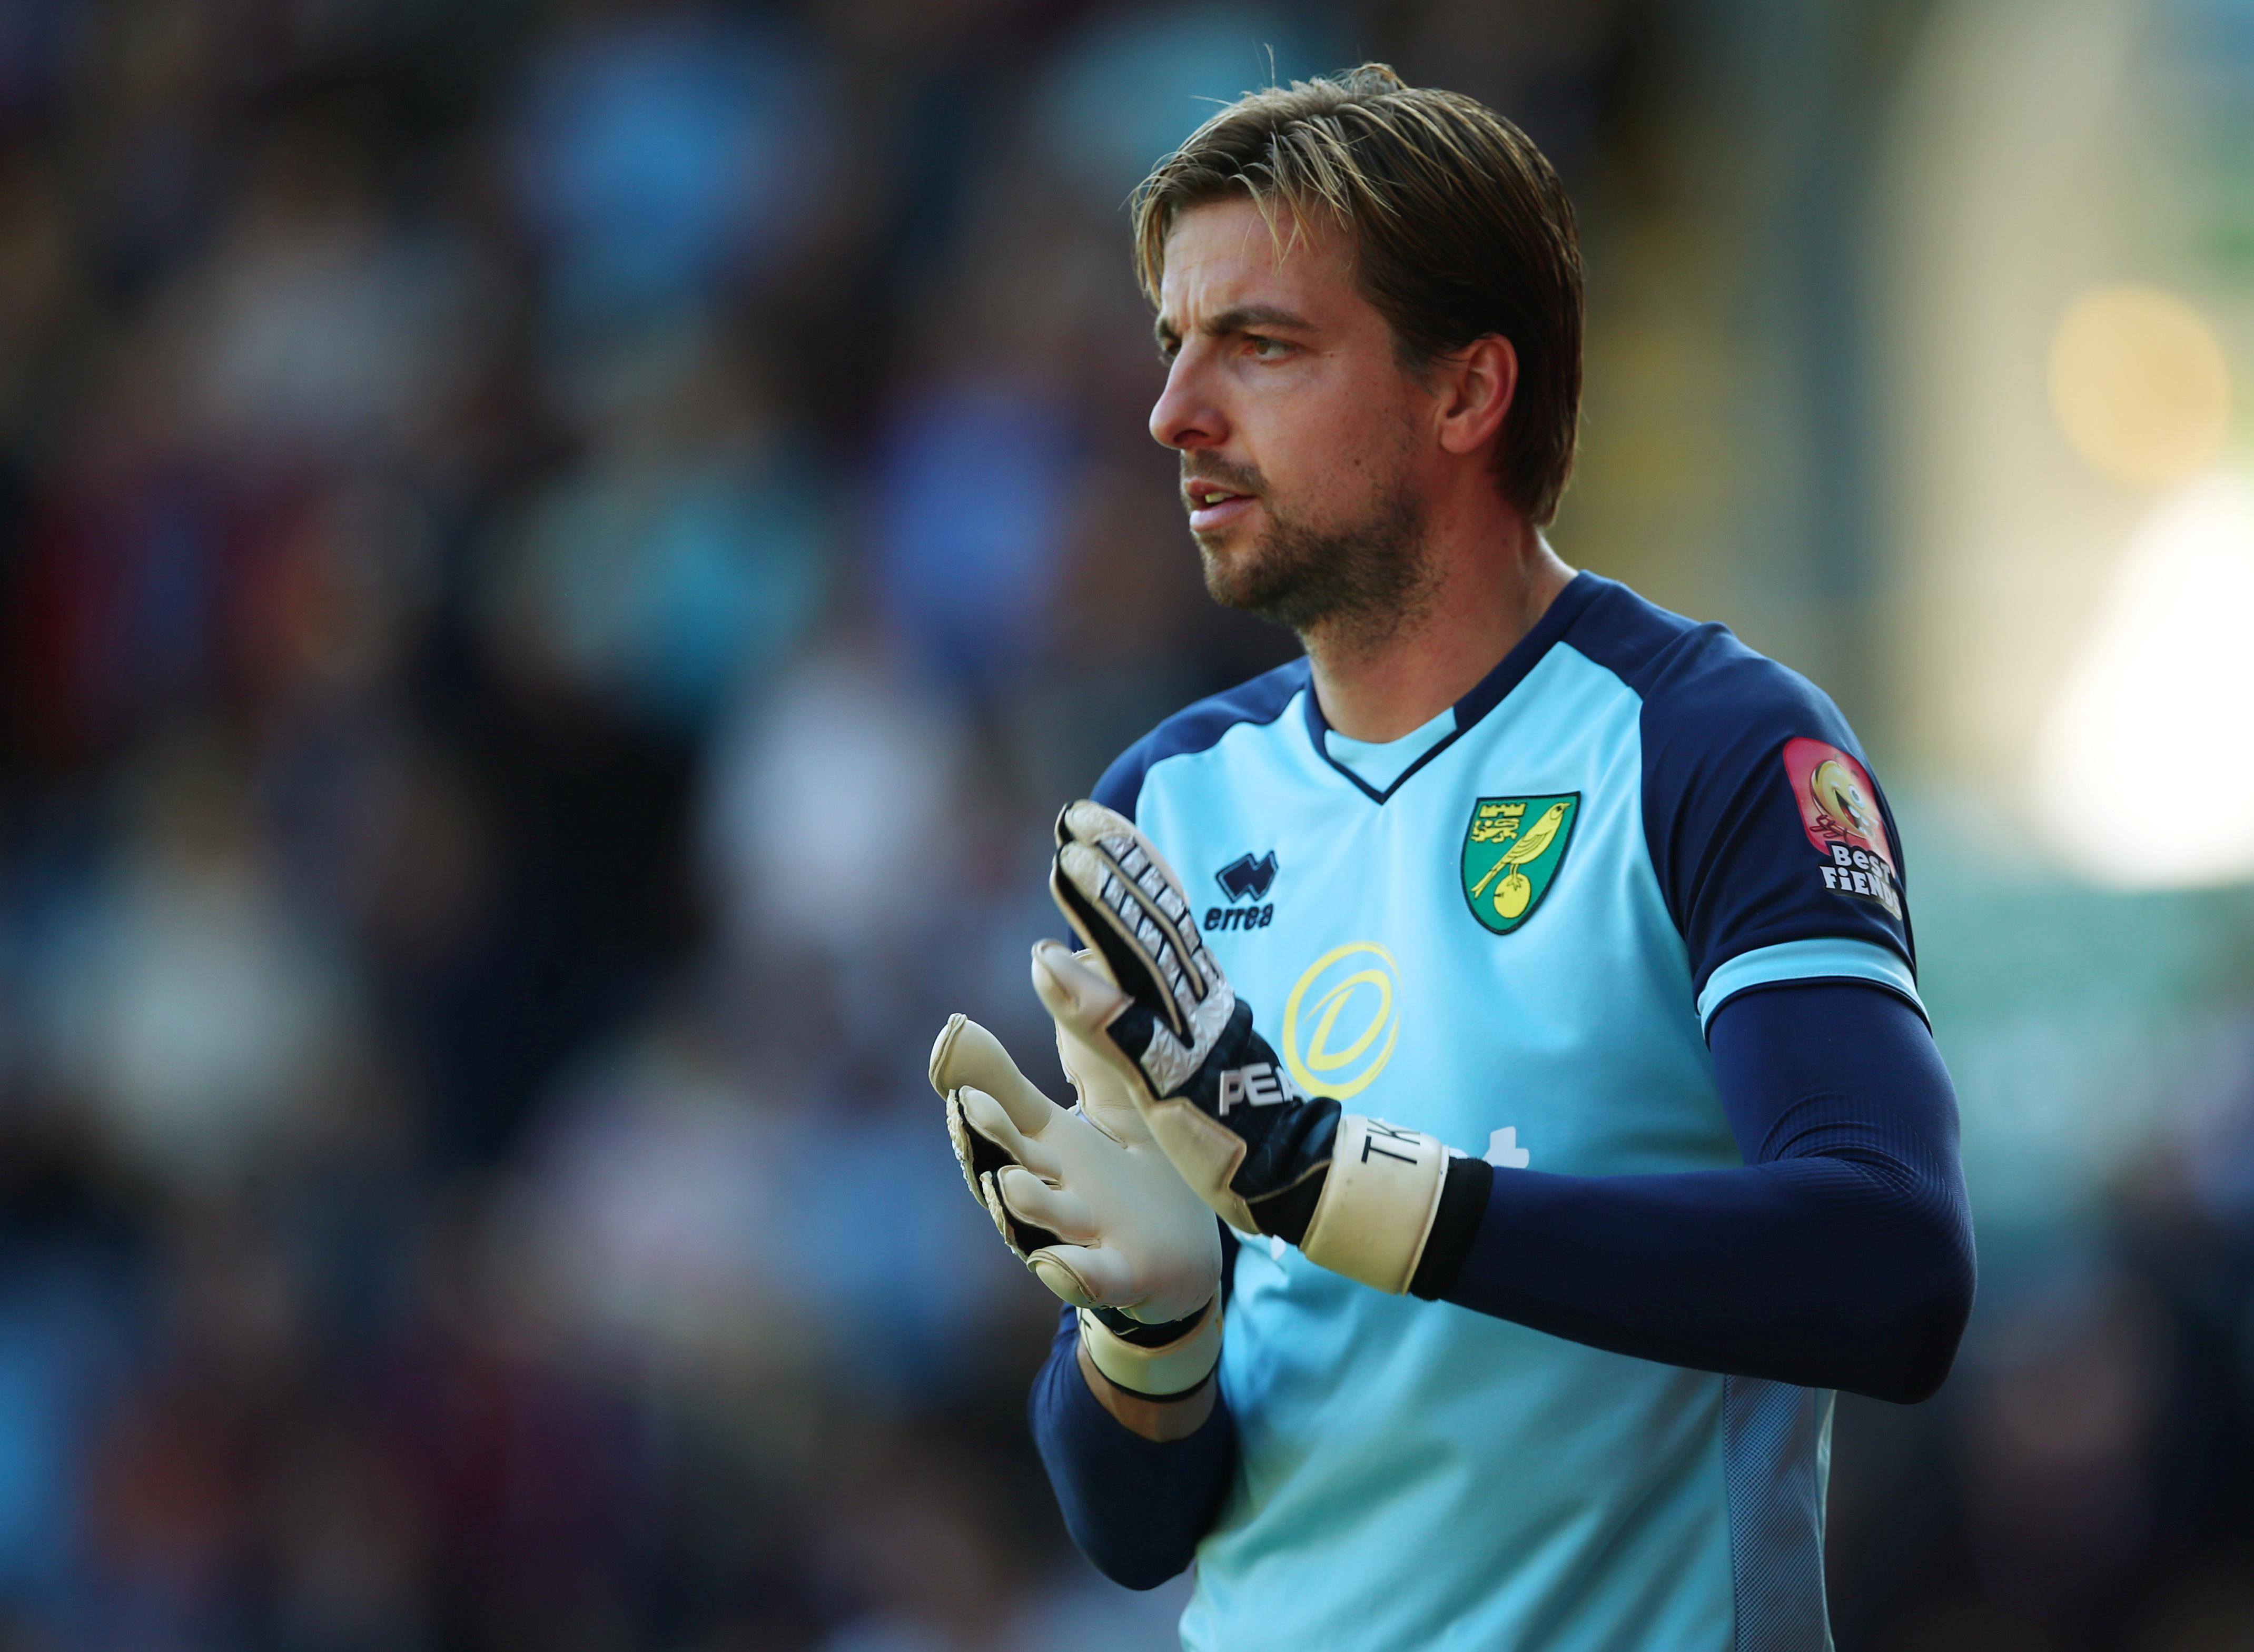 Norwich suffer Krul blow as goalkeeper is ruled out for Palace trip